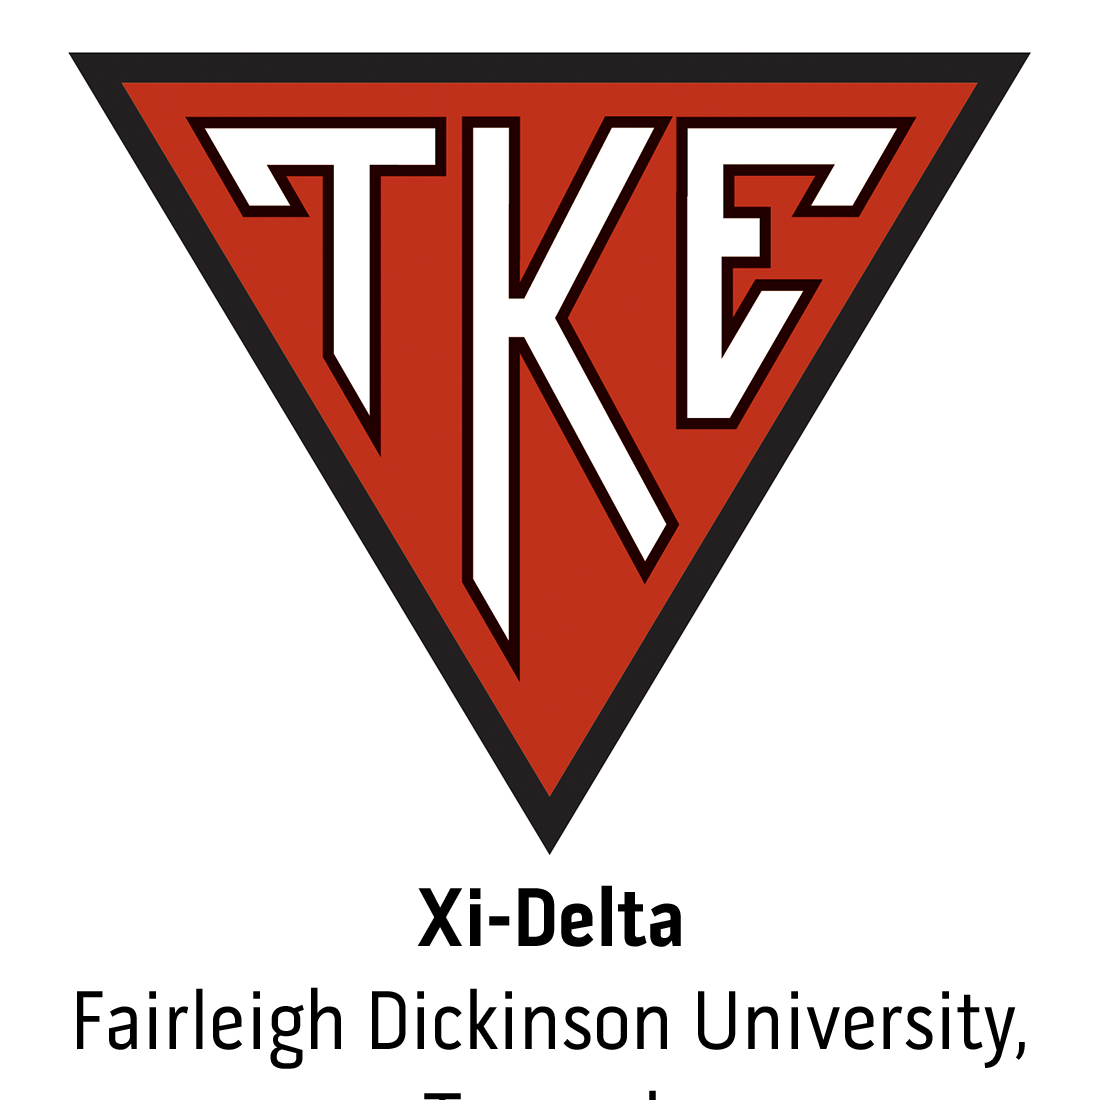 Xi-Delta Chapter at Fairleigh Dickinson University, Teaneck